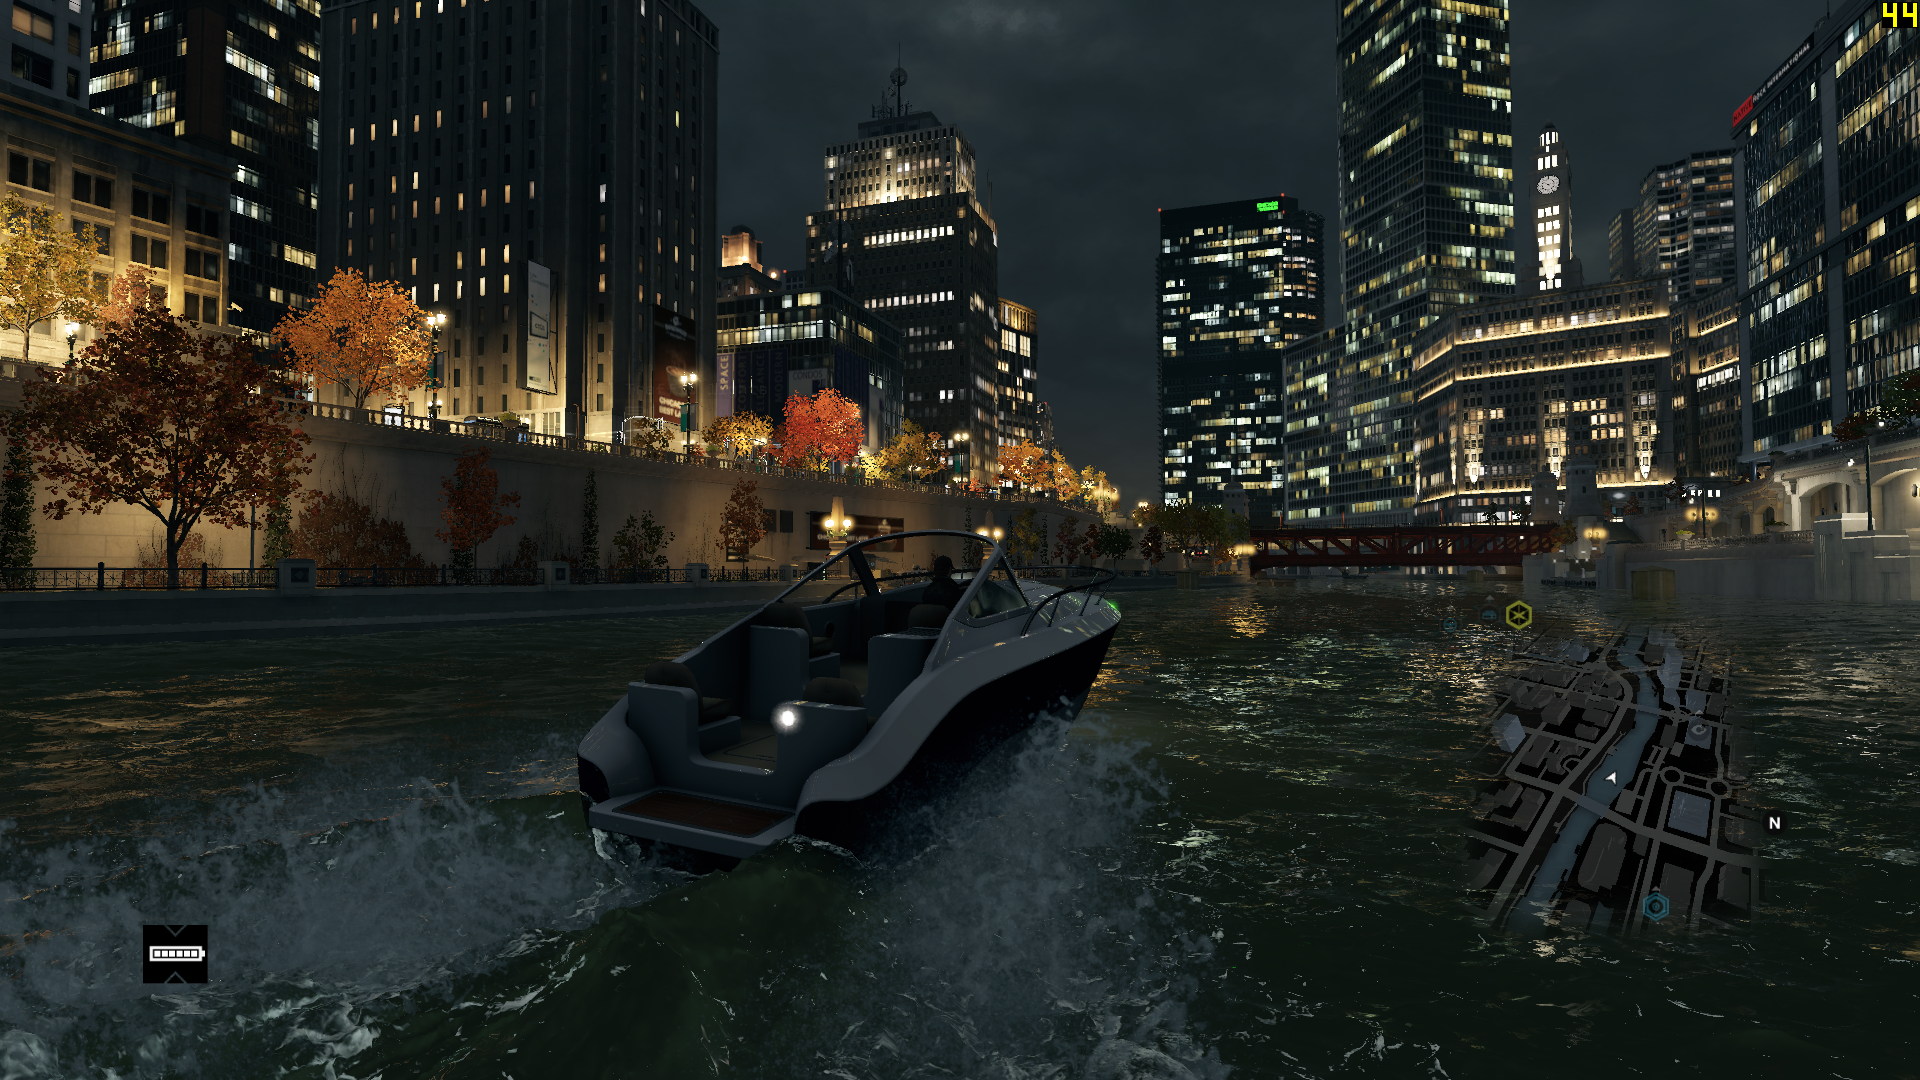 watch_dogs2014-06-020xoks7.png